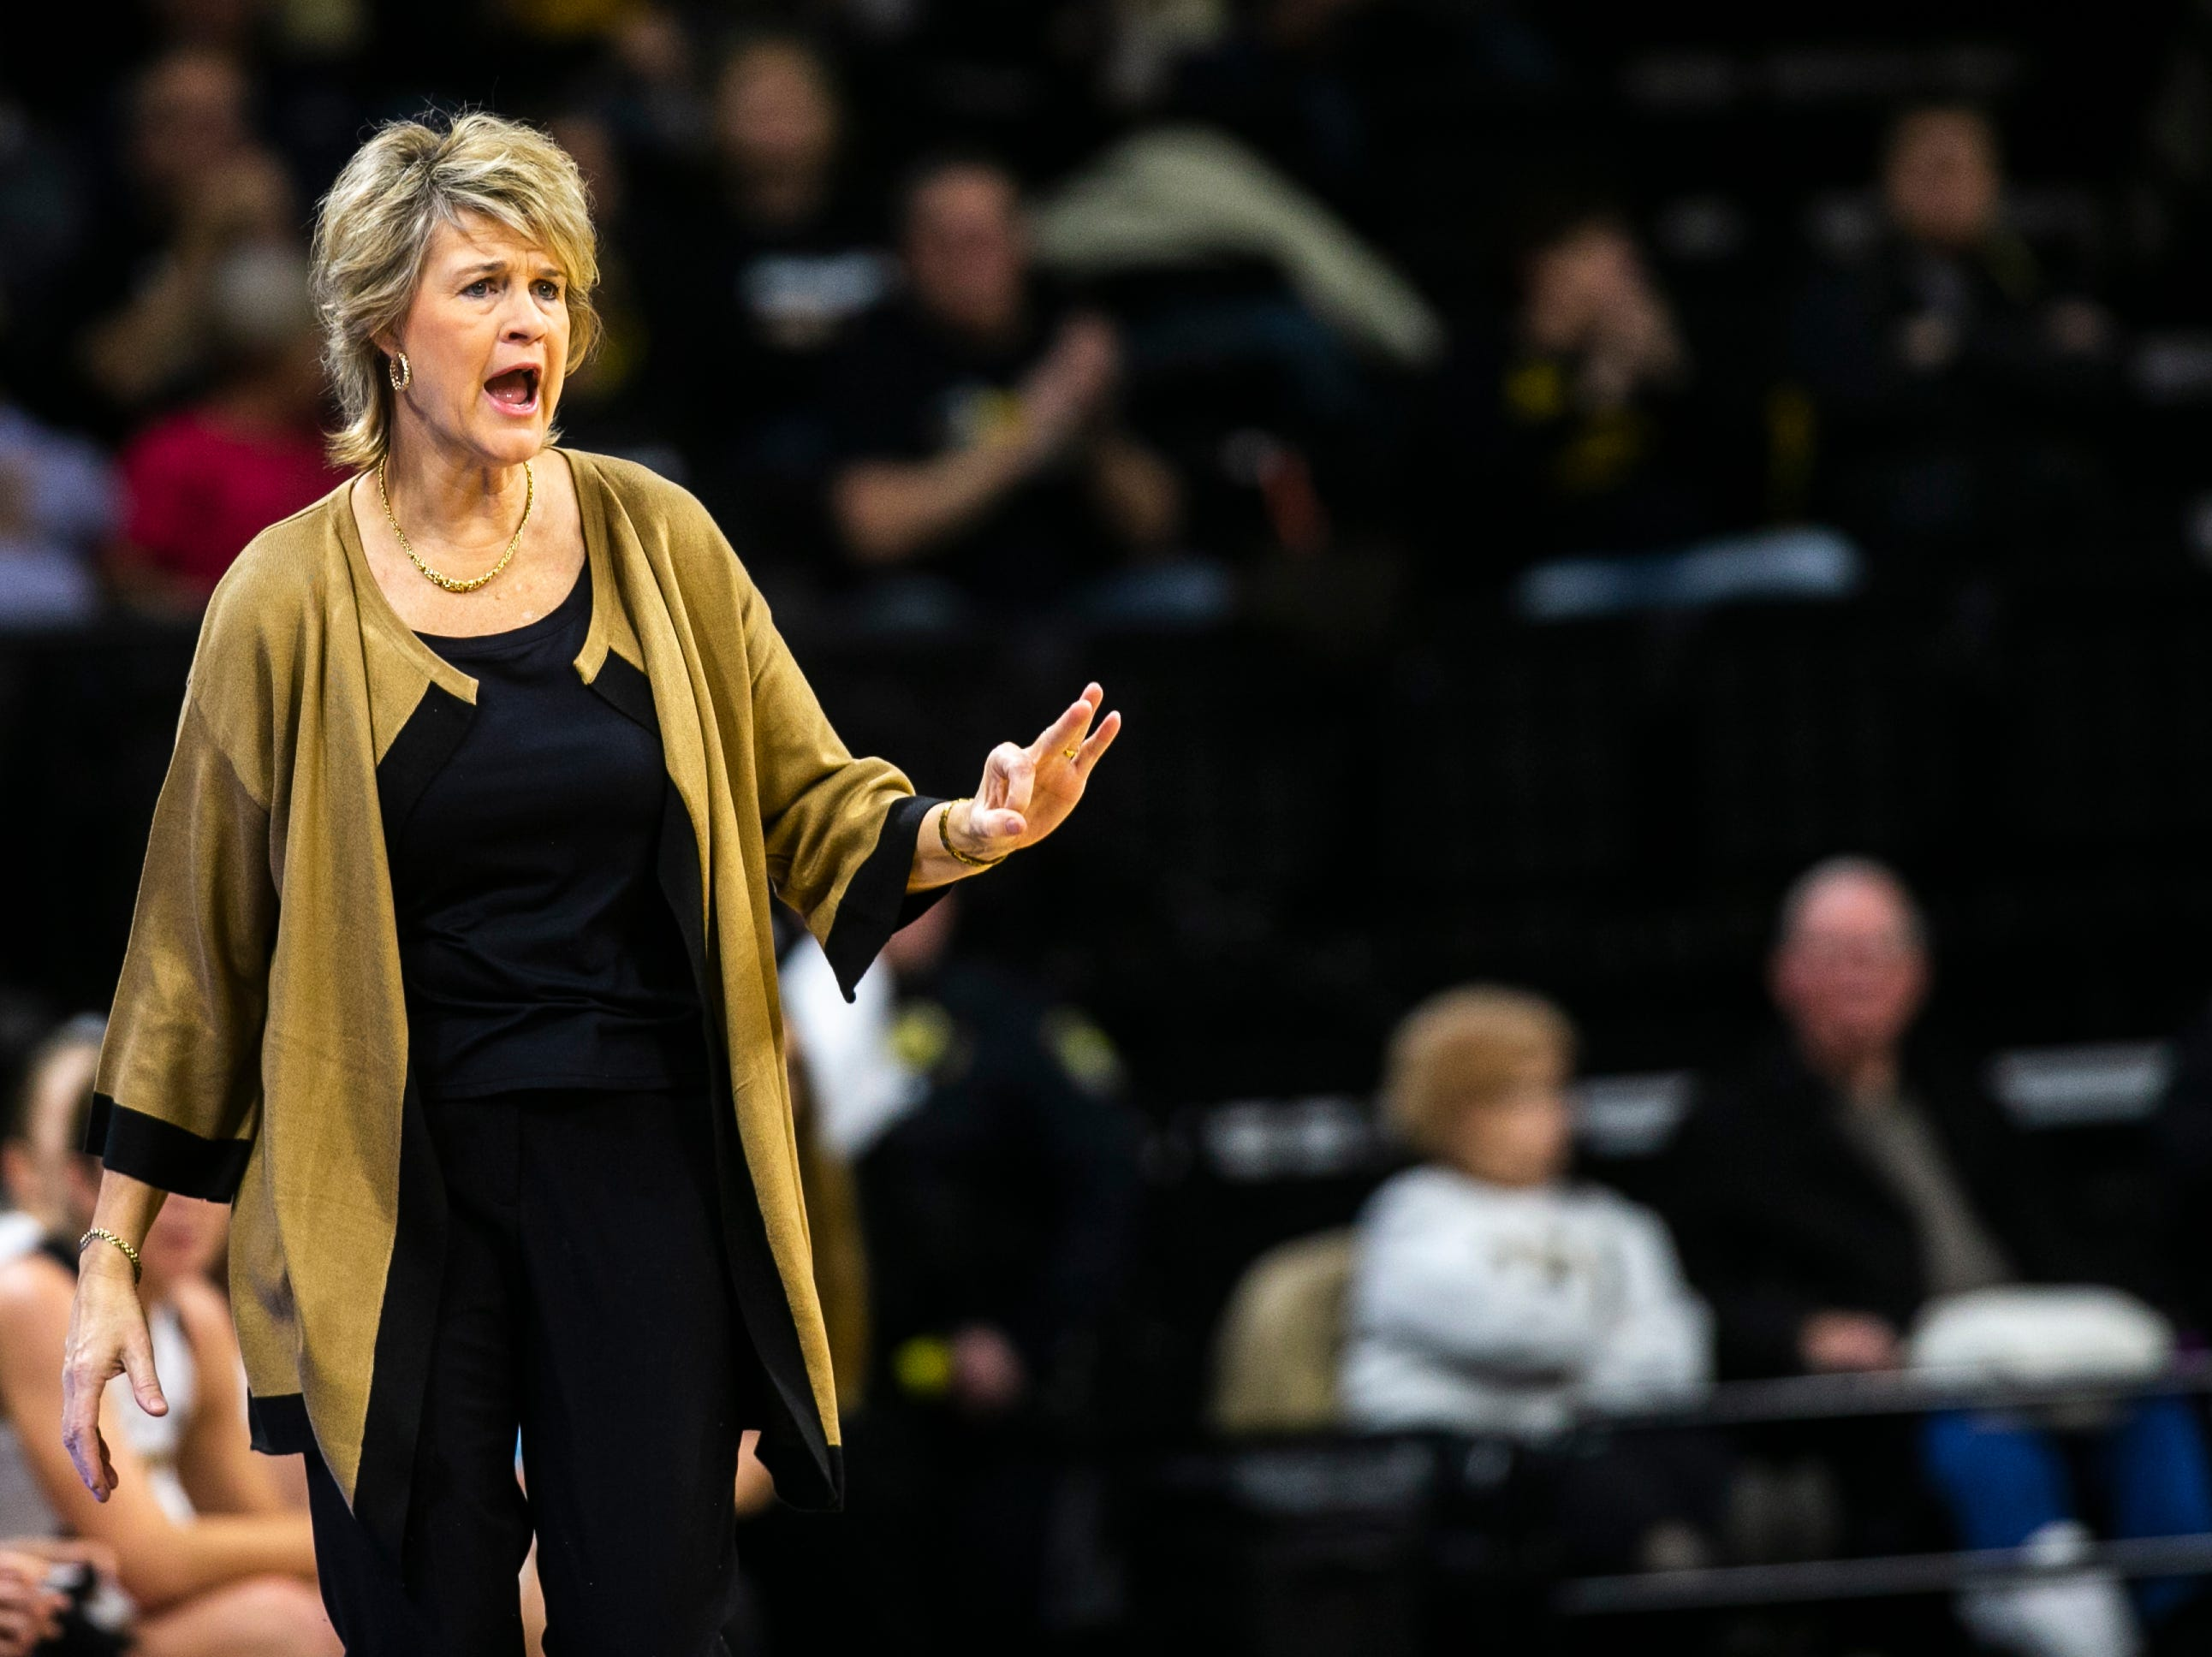 Iowa women's basketball: No. 18 Hawkeyes roll by Illinois behind offensive outburst